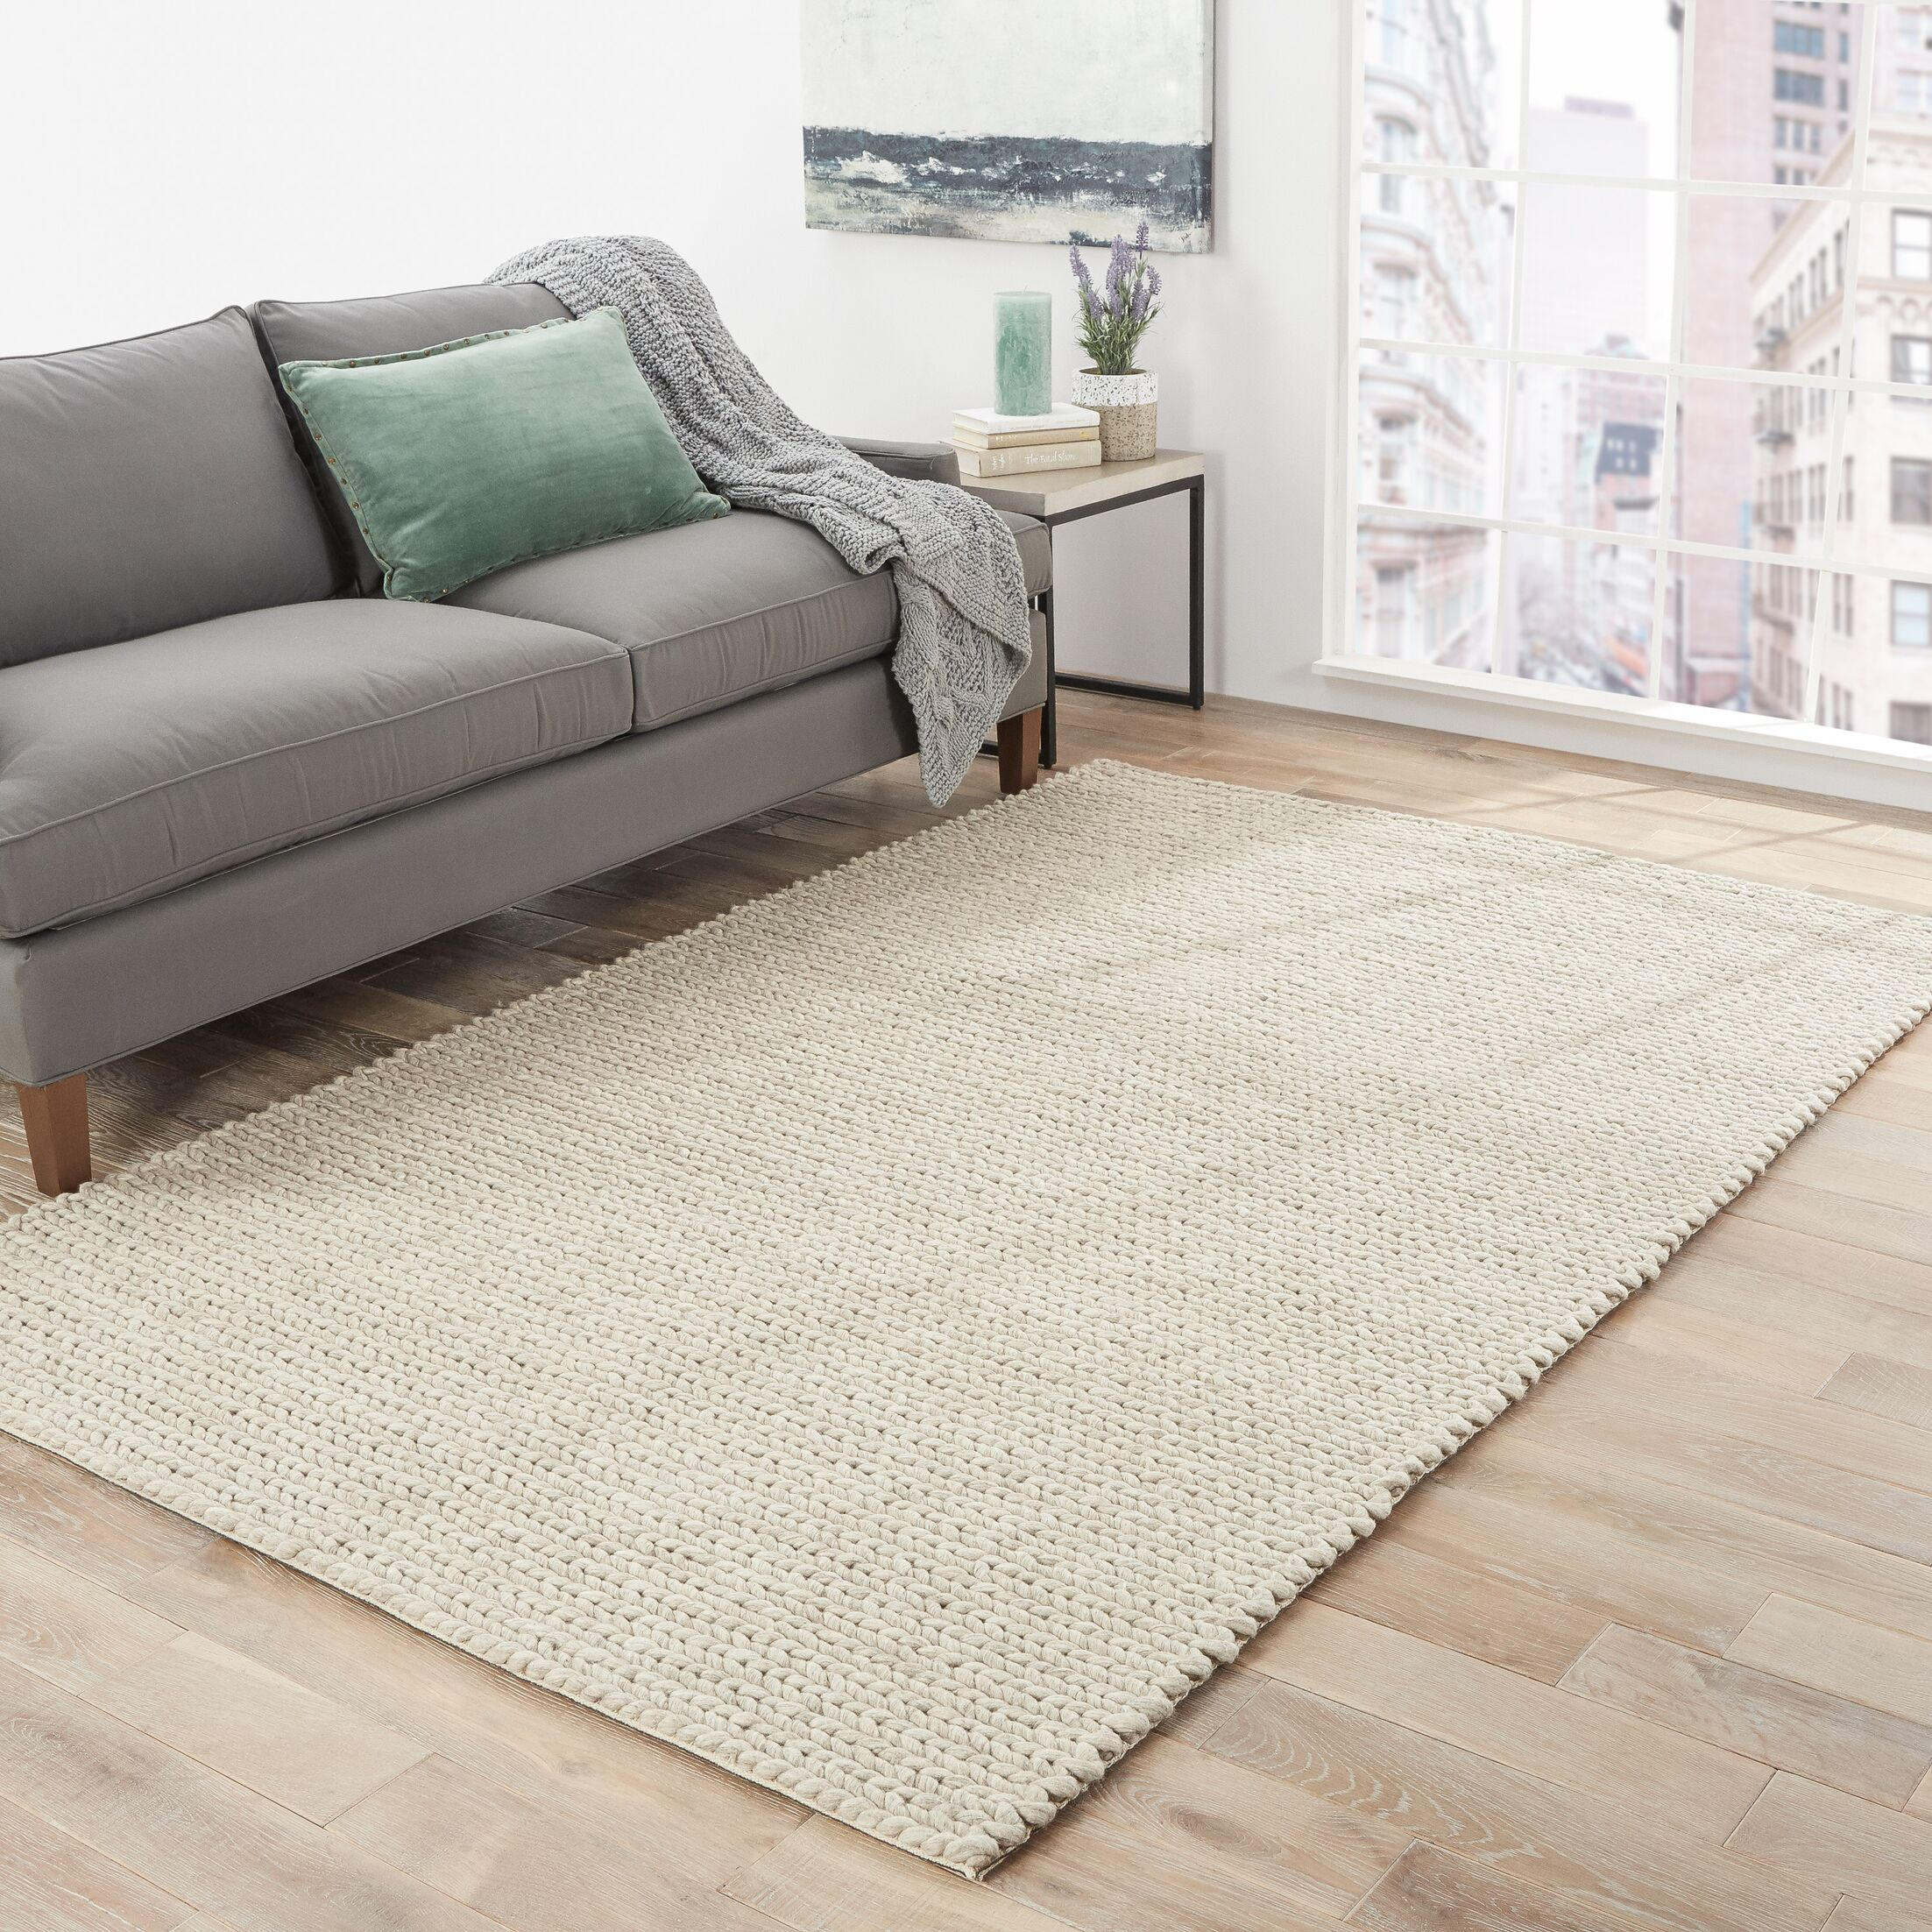 Checotah Gray Rug Rug Size: Rectangle 5' x 8'